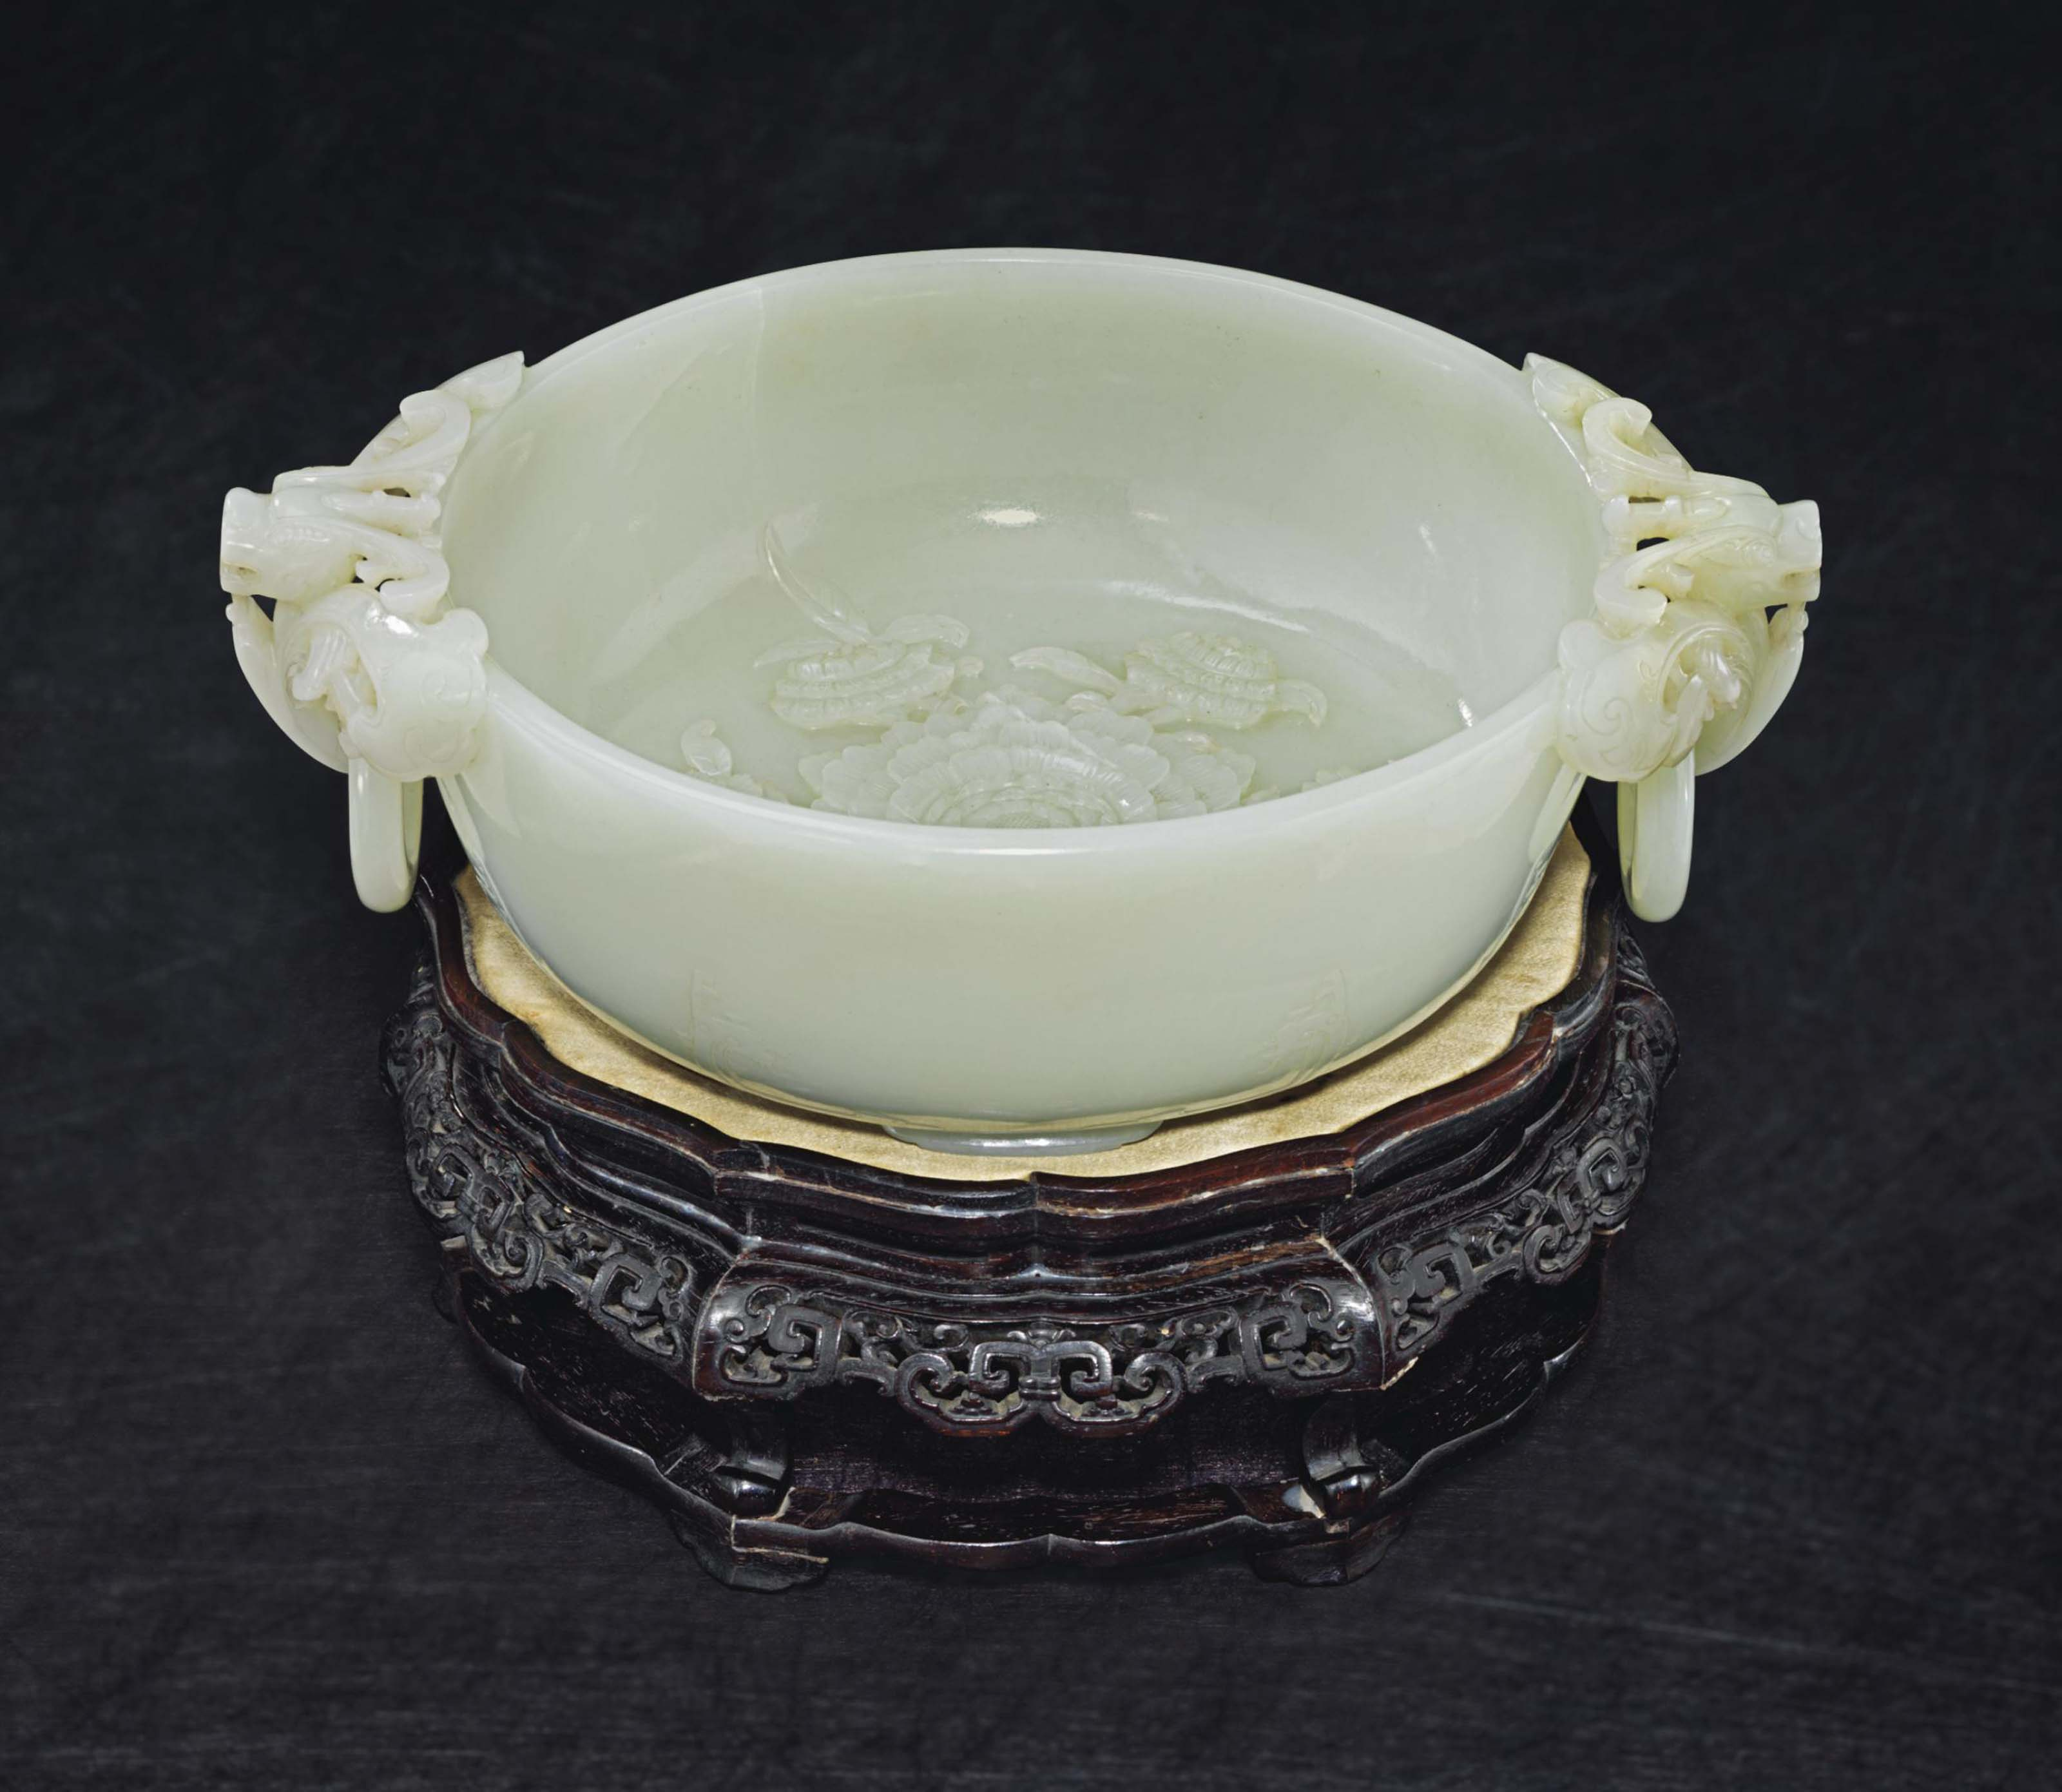 A RARE AND FINELY CARVED WHITE JADE MARRIAGE BOWL AND A CARVED ZITAN STAND